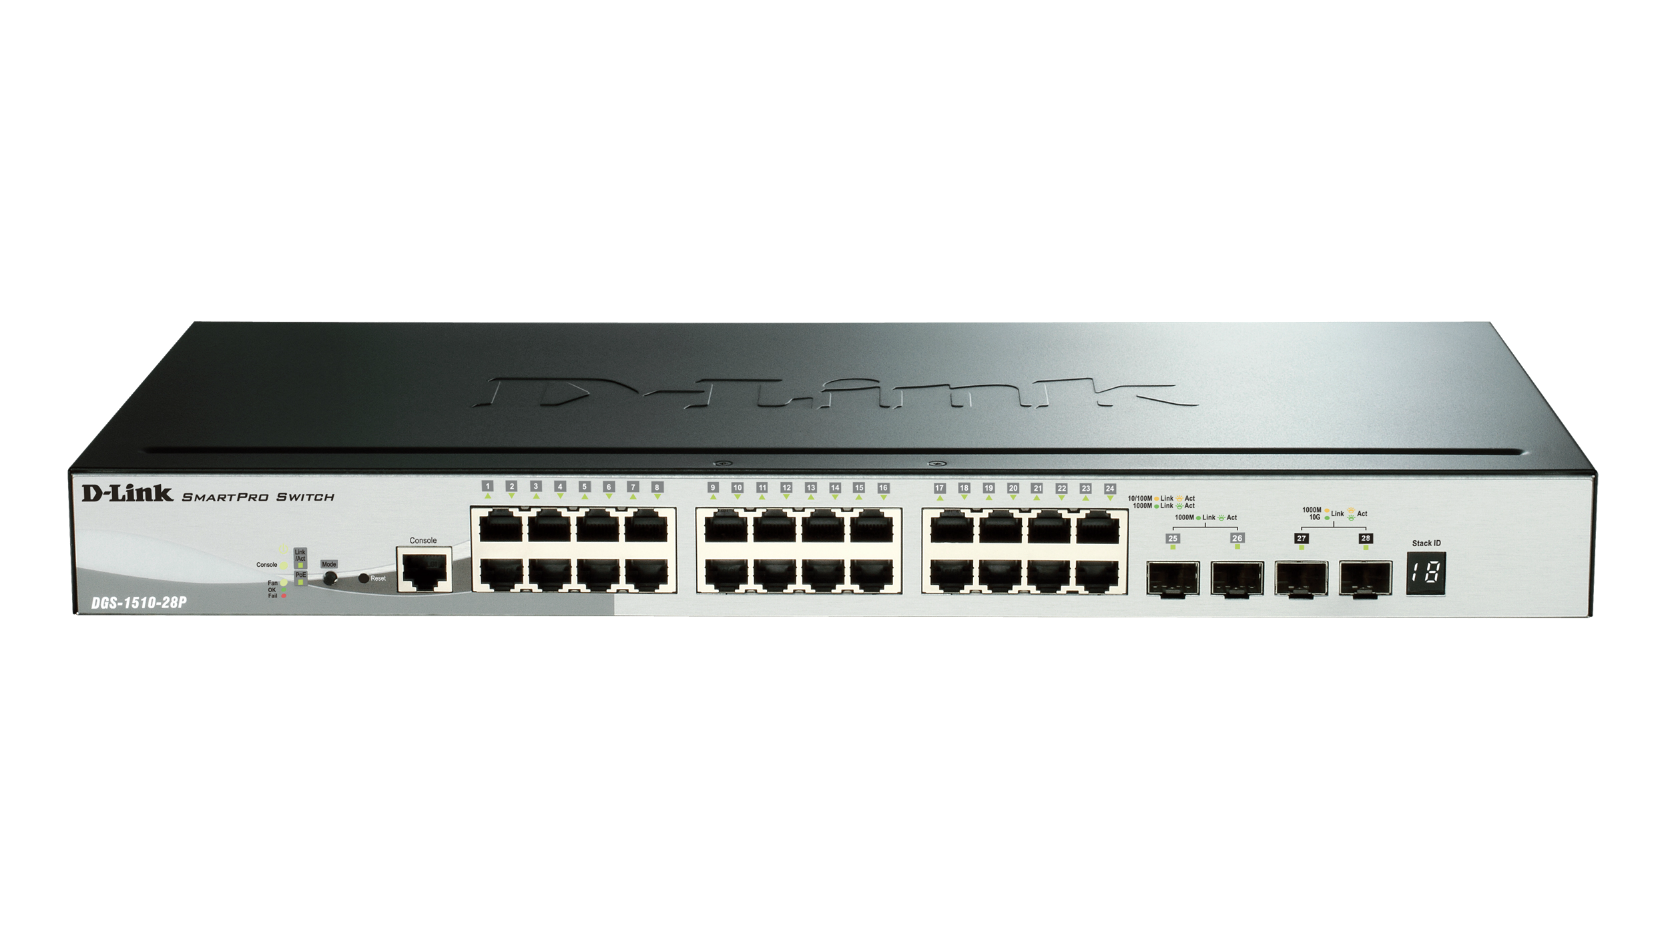 28-Port Gigabit Stackable PoE Smart Managed Switch including 2 10G SFP+ and 2 SFP ports (24 x PoE ports, 193 W PoE budget)